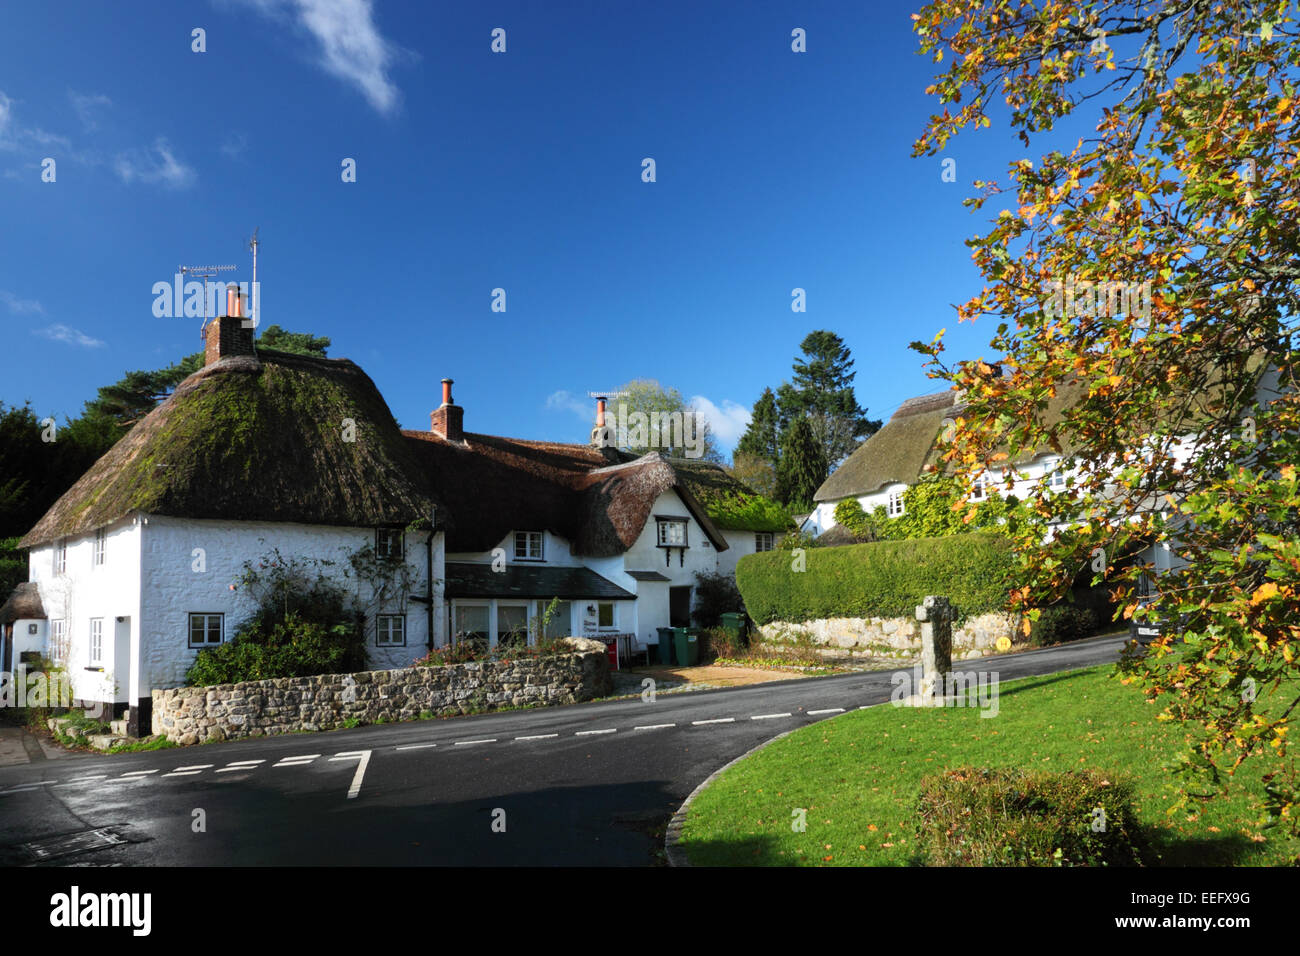 A thatched cottage with a tree in autumn foliage and a village green. - Stock Image